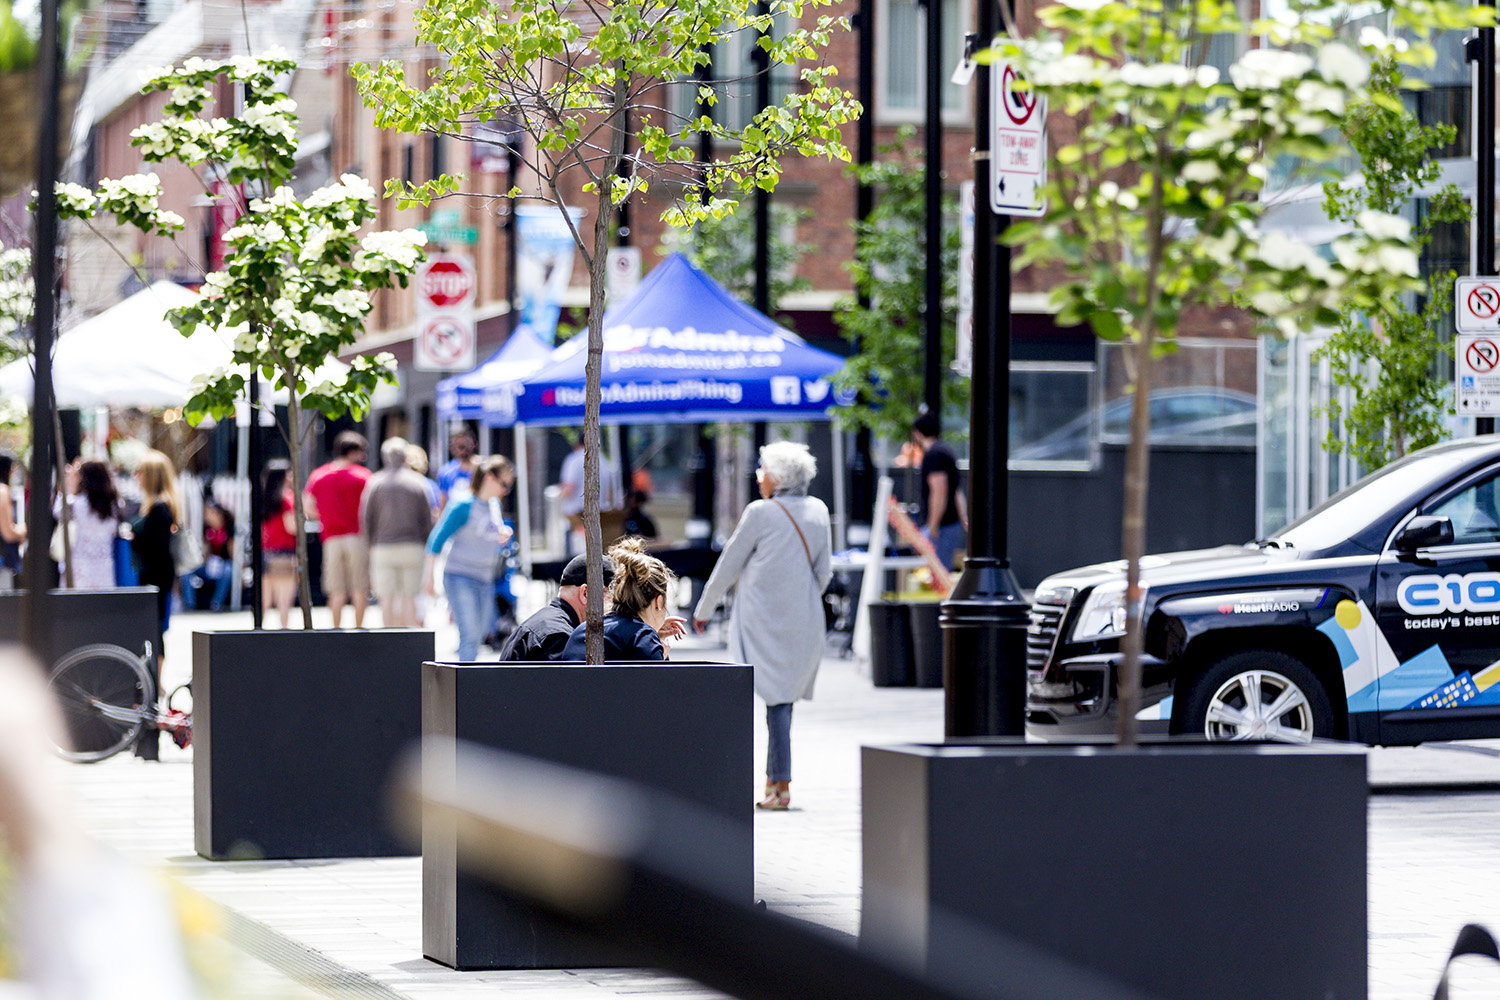 On weekends throughout the summer the street closes to vehicular traffic, allowing for pedestrian friendly events.